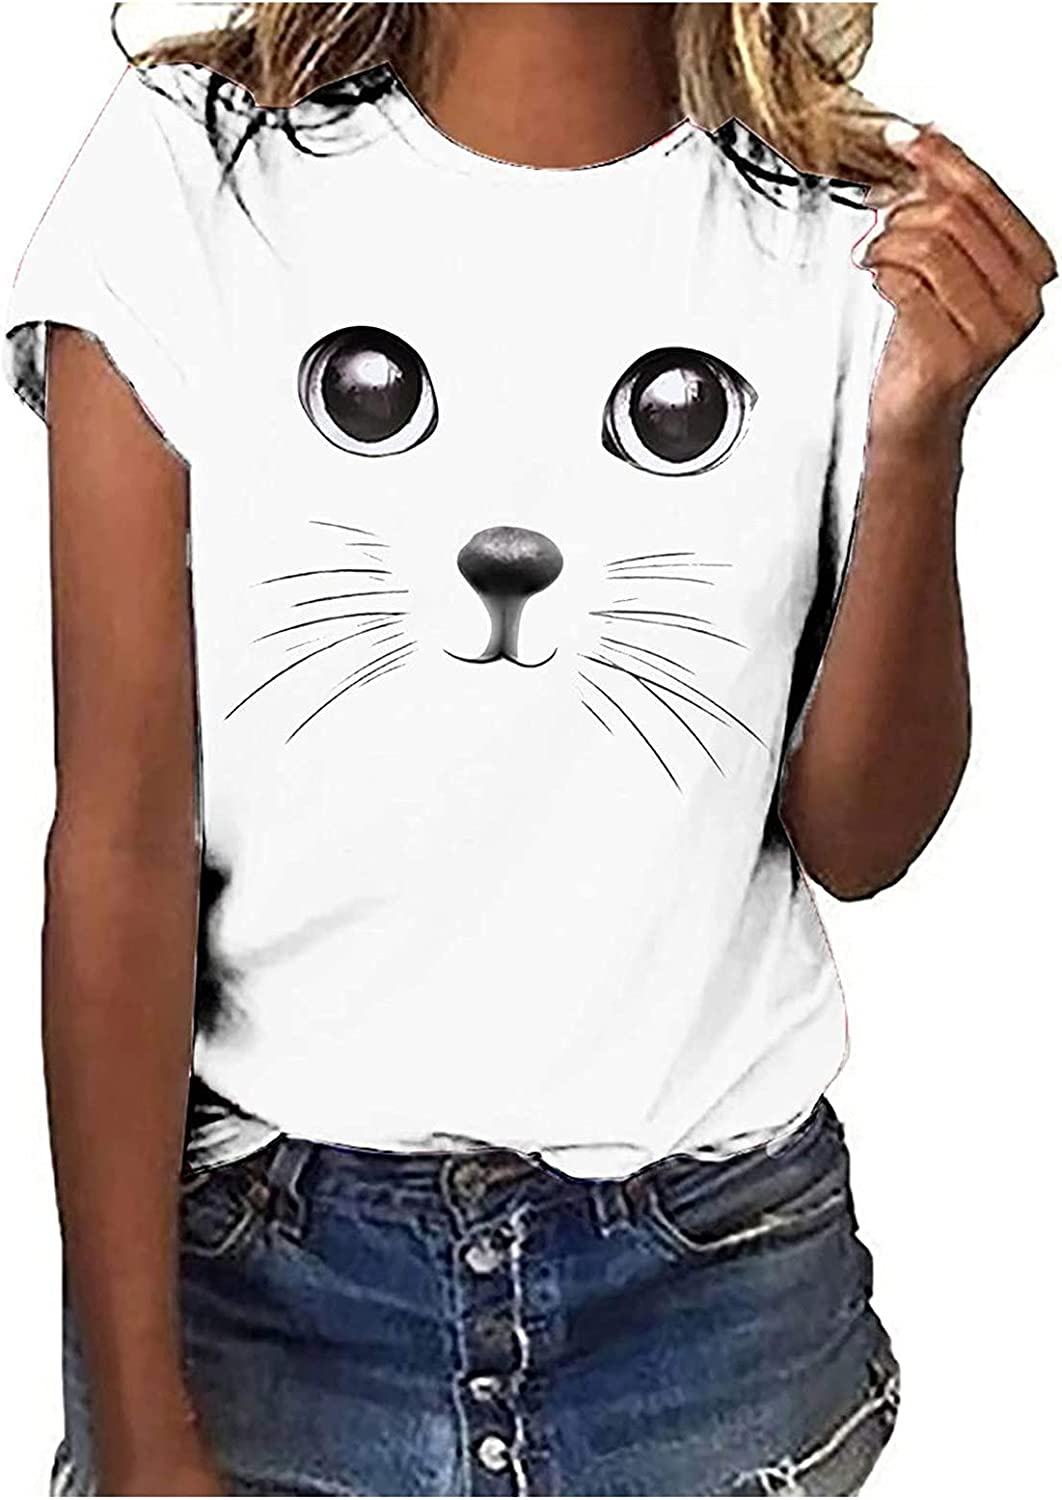 Women T-Shirts Graphic Denver Mall New product type Tees Cat Printing Pattern Cute Casual Sho